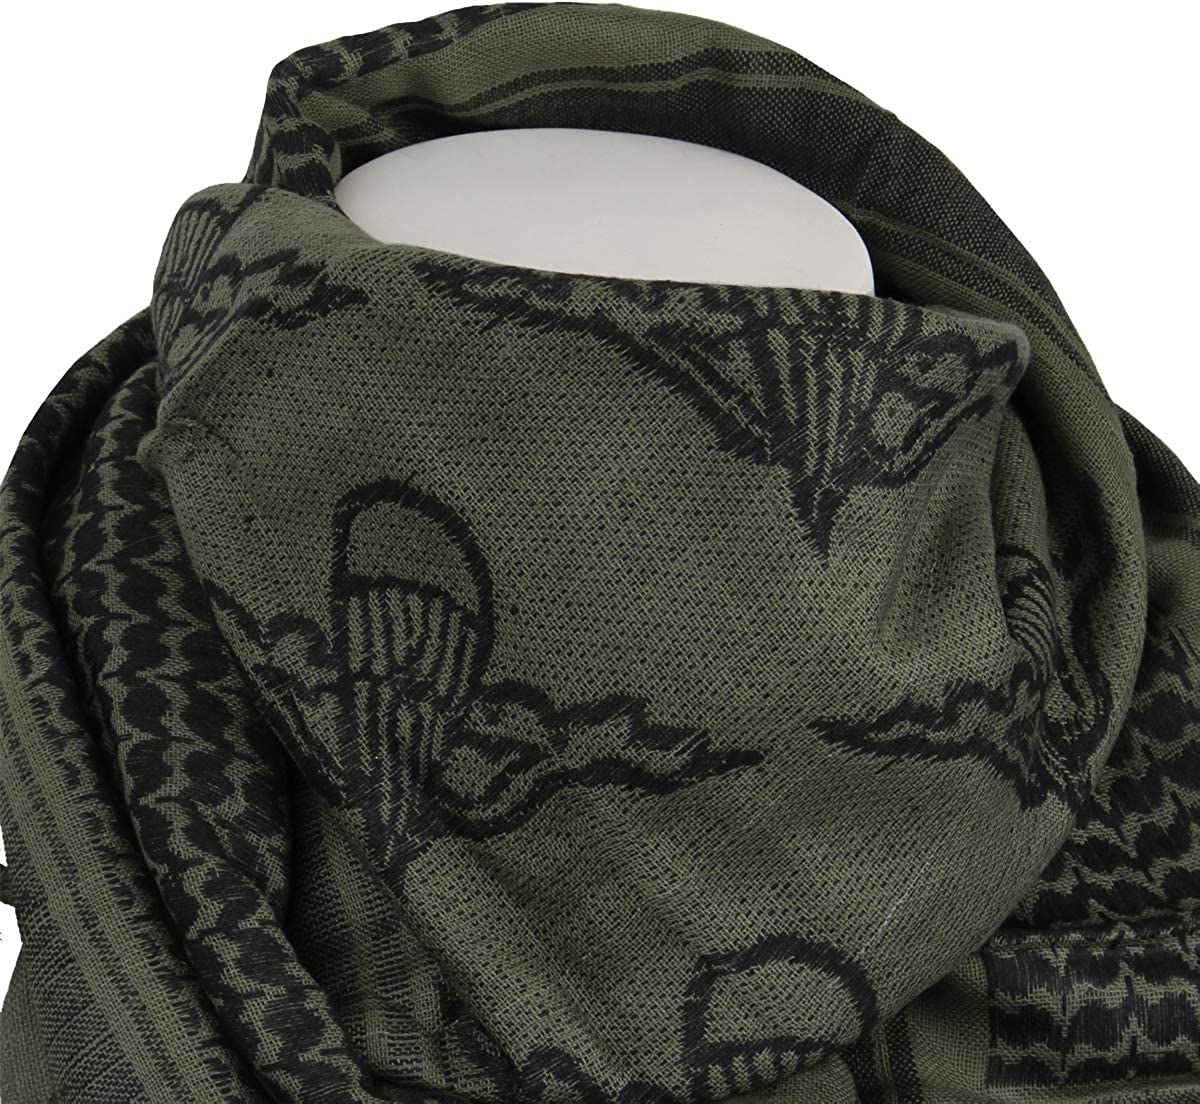 Mil-Tec Paratrooper Shemagh Headscarf